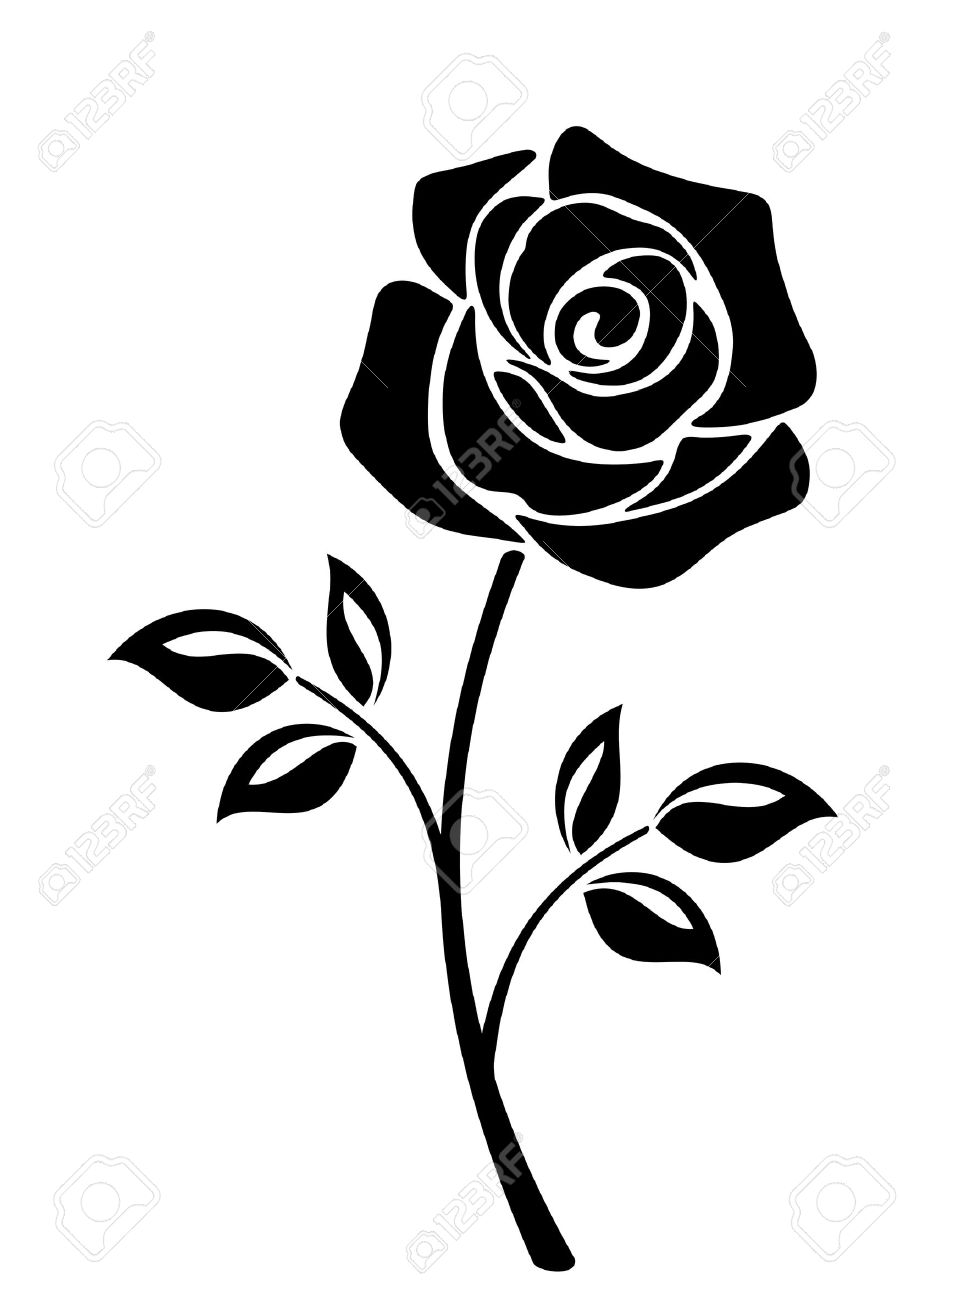 975x1300 Vector Black Silhouette Of A Rose Flower With Stem Isolated